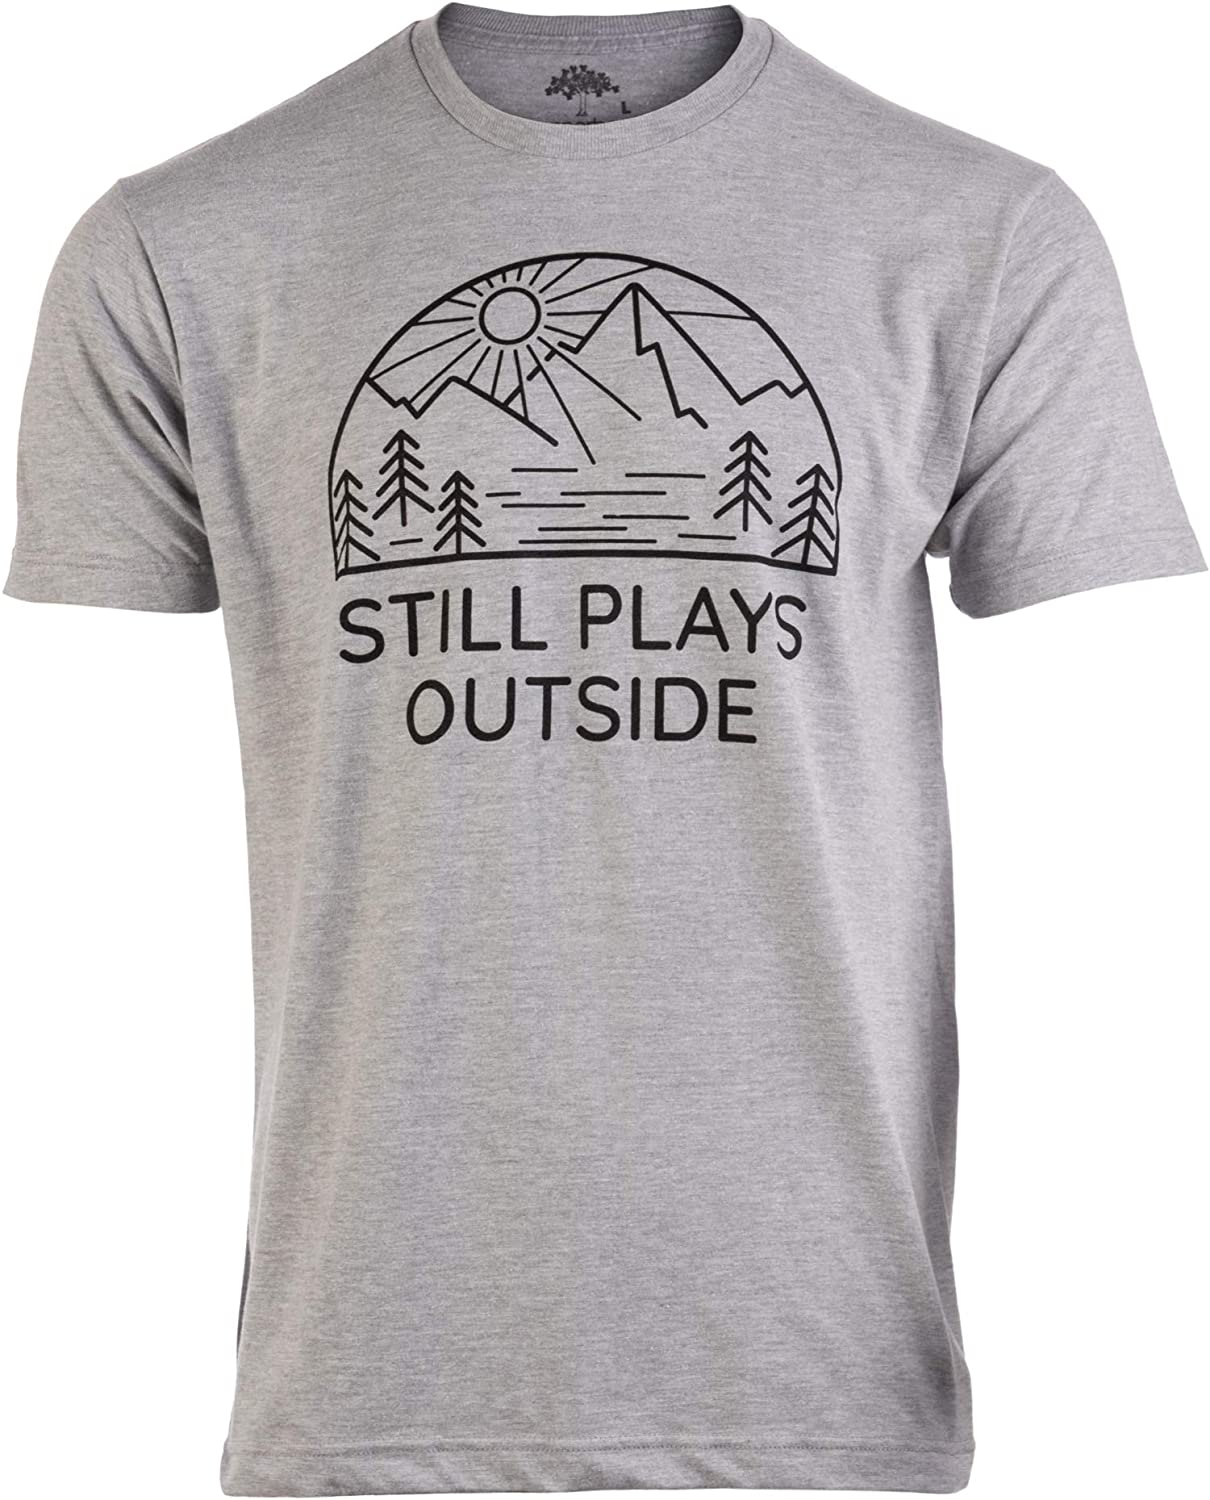 Still Plays Outside | Funny Hiking Hiker Camping Camper Outdoors Men Women Shirt